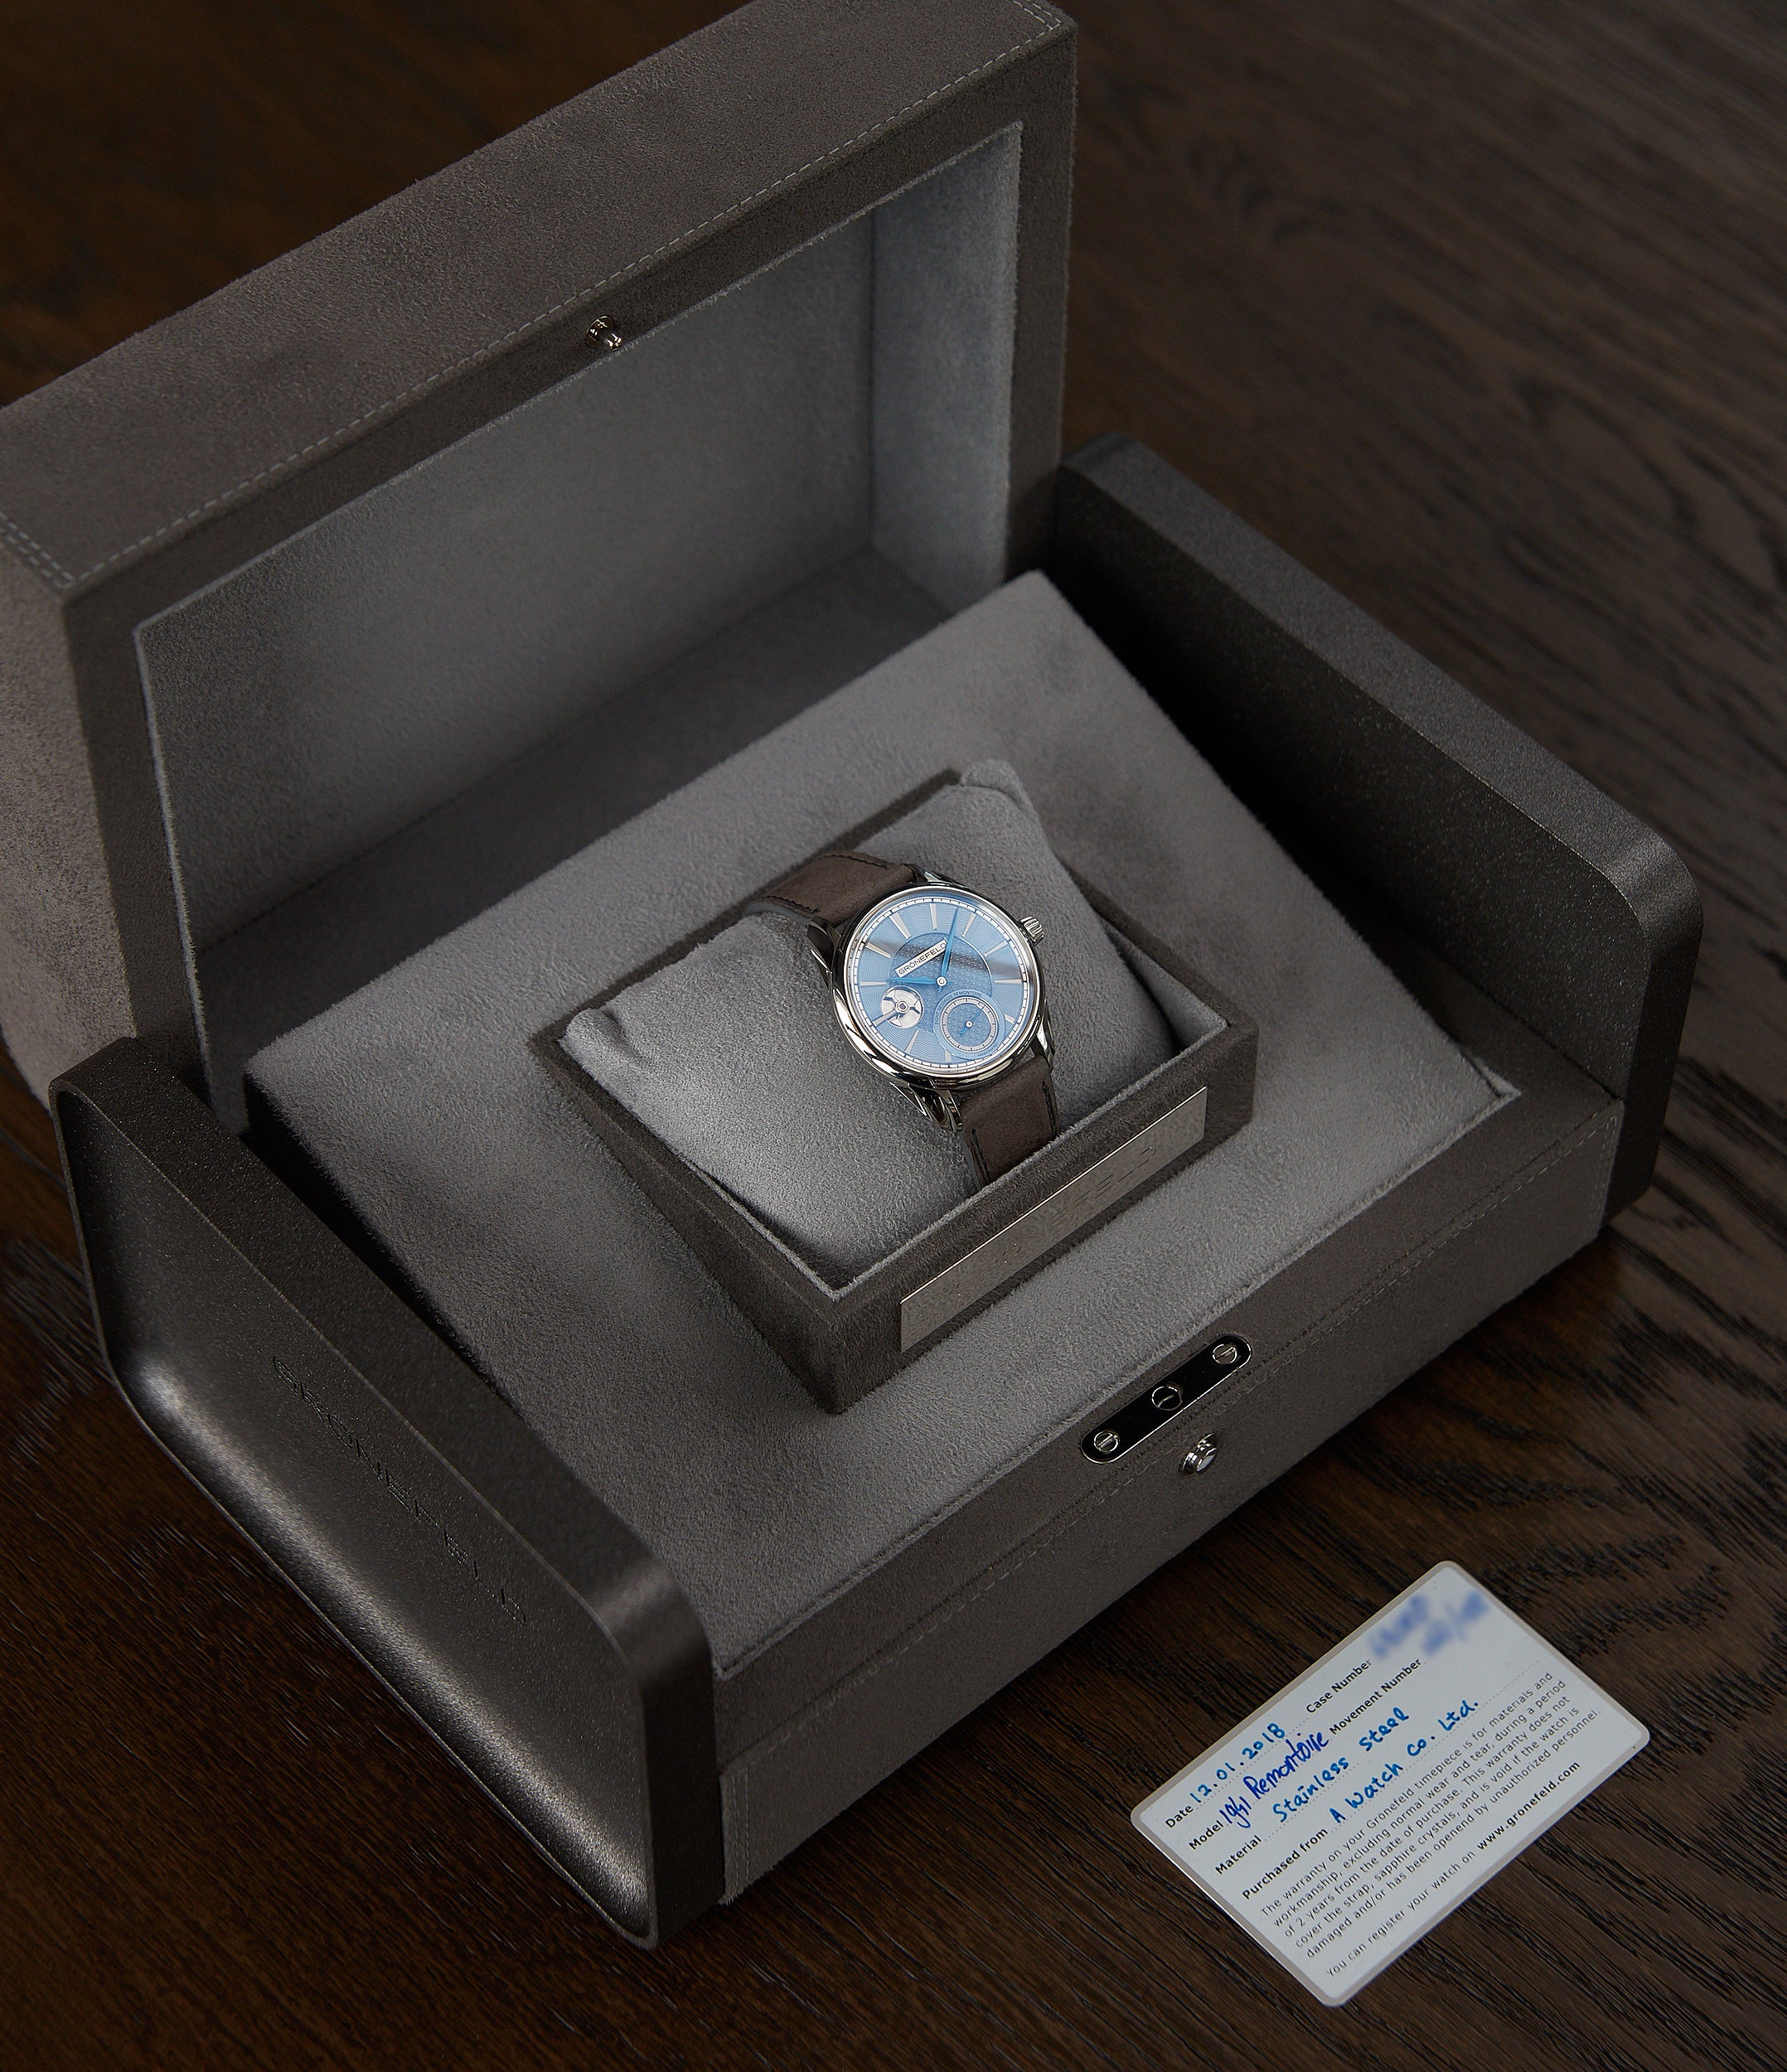 pre-owned full set Gronefeld 1941 Remontoire light blue Voutilainen dial eight seconds remontoire time-only dress watch for sale online at A Collected Man London UK specialist of independent watchmakers